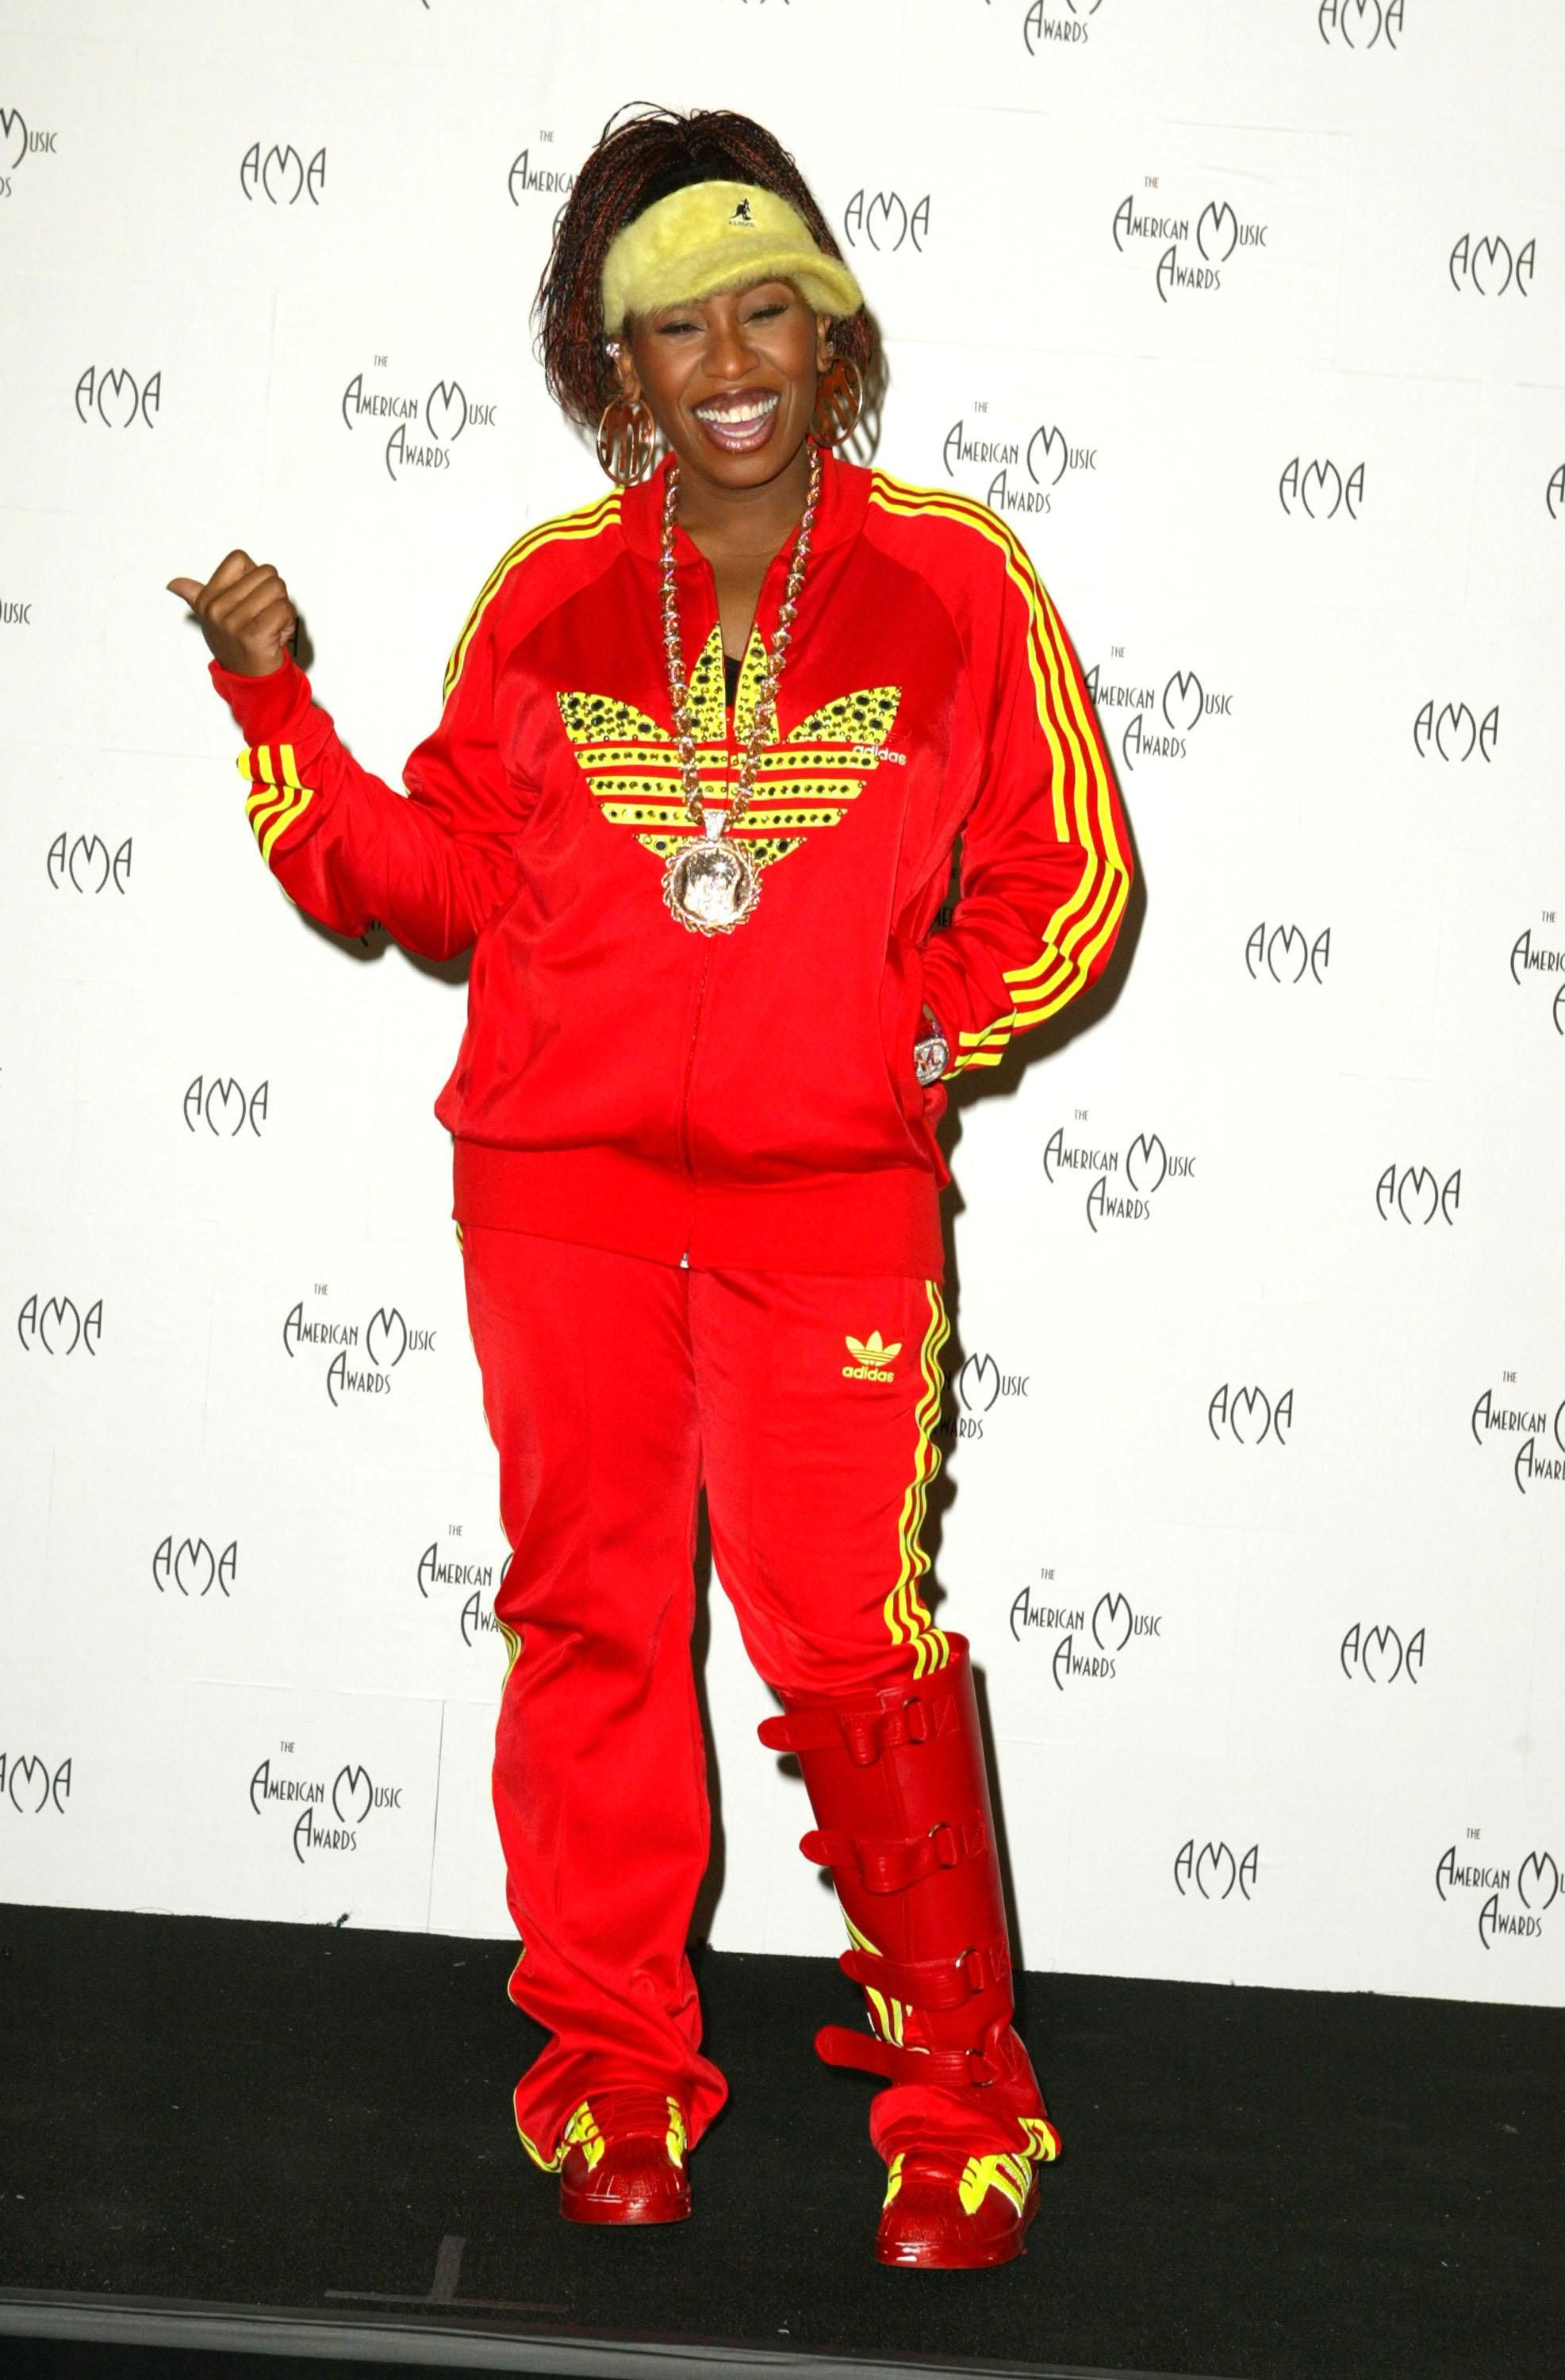 e4572952ad7 missy elliott outfit - Google Search